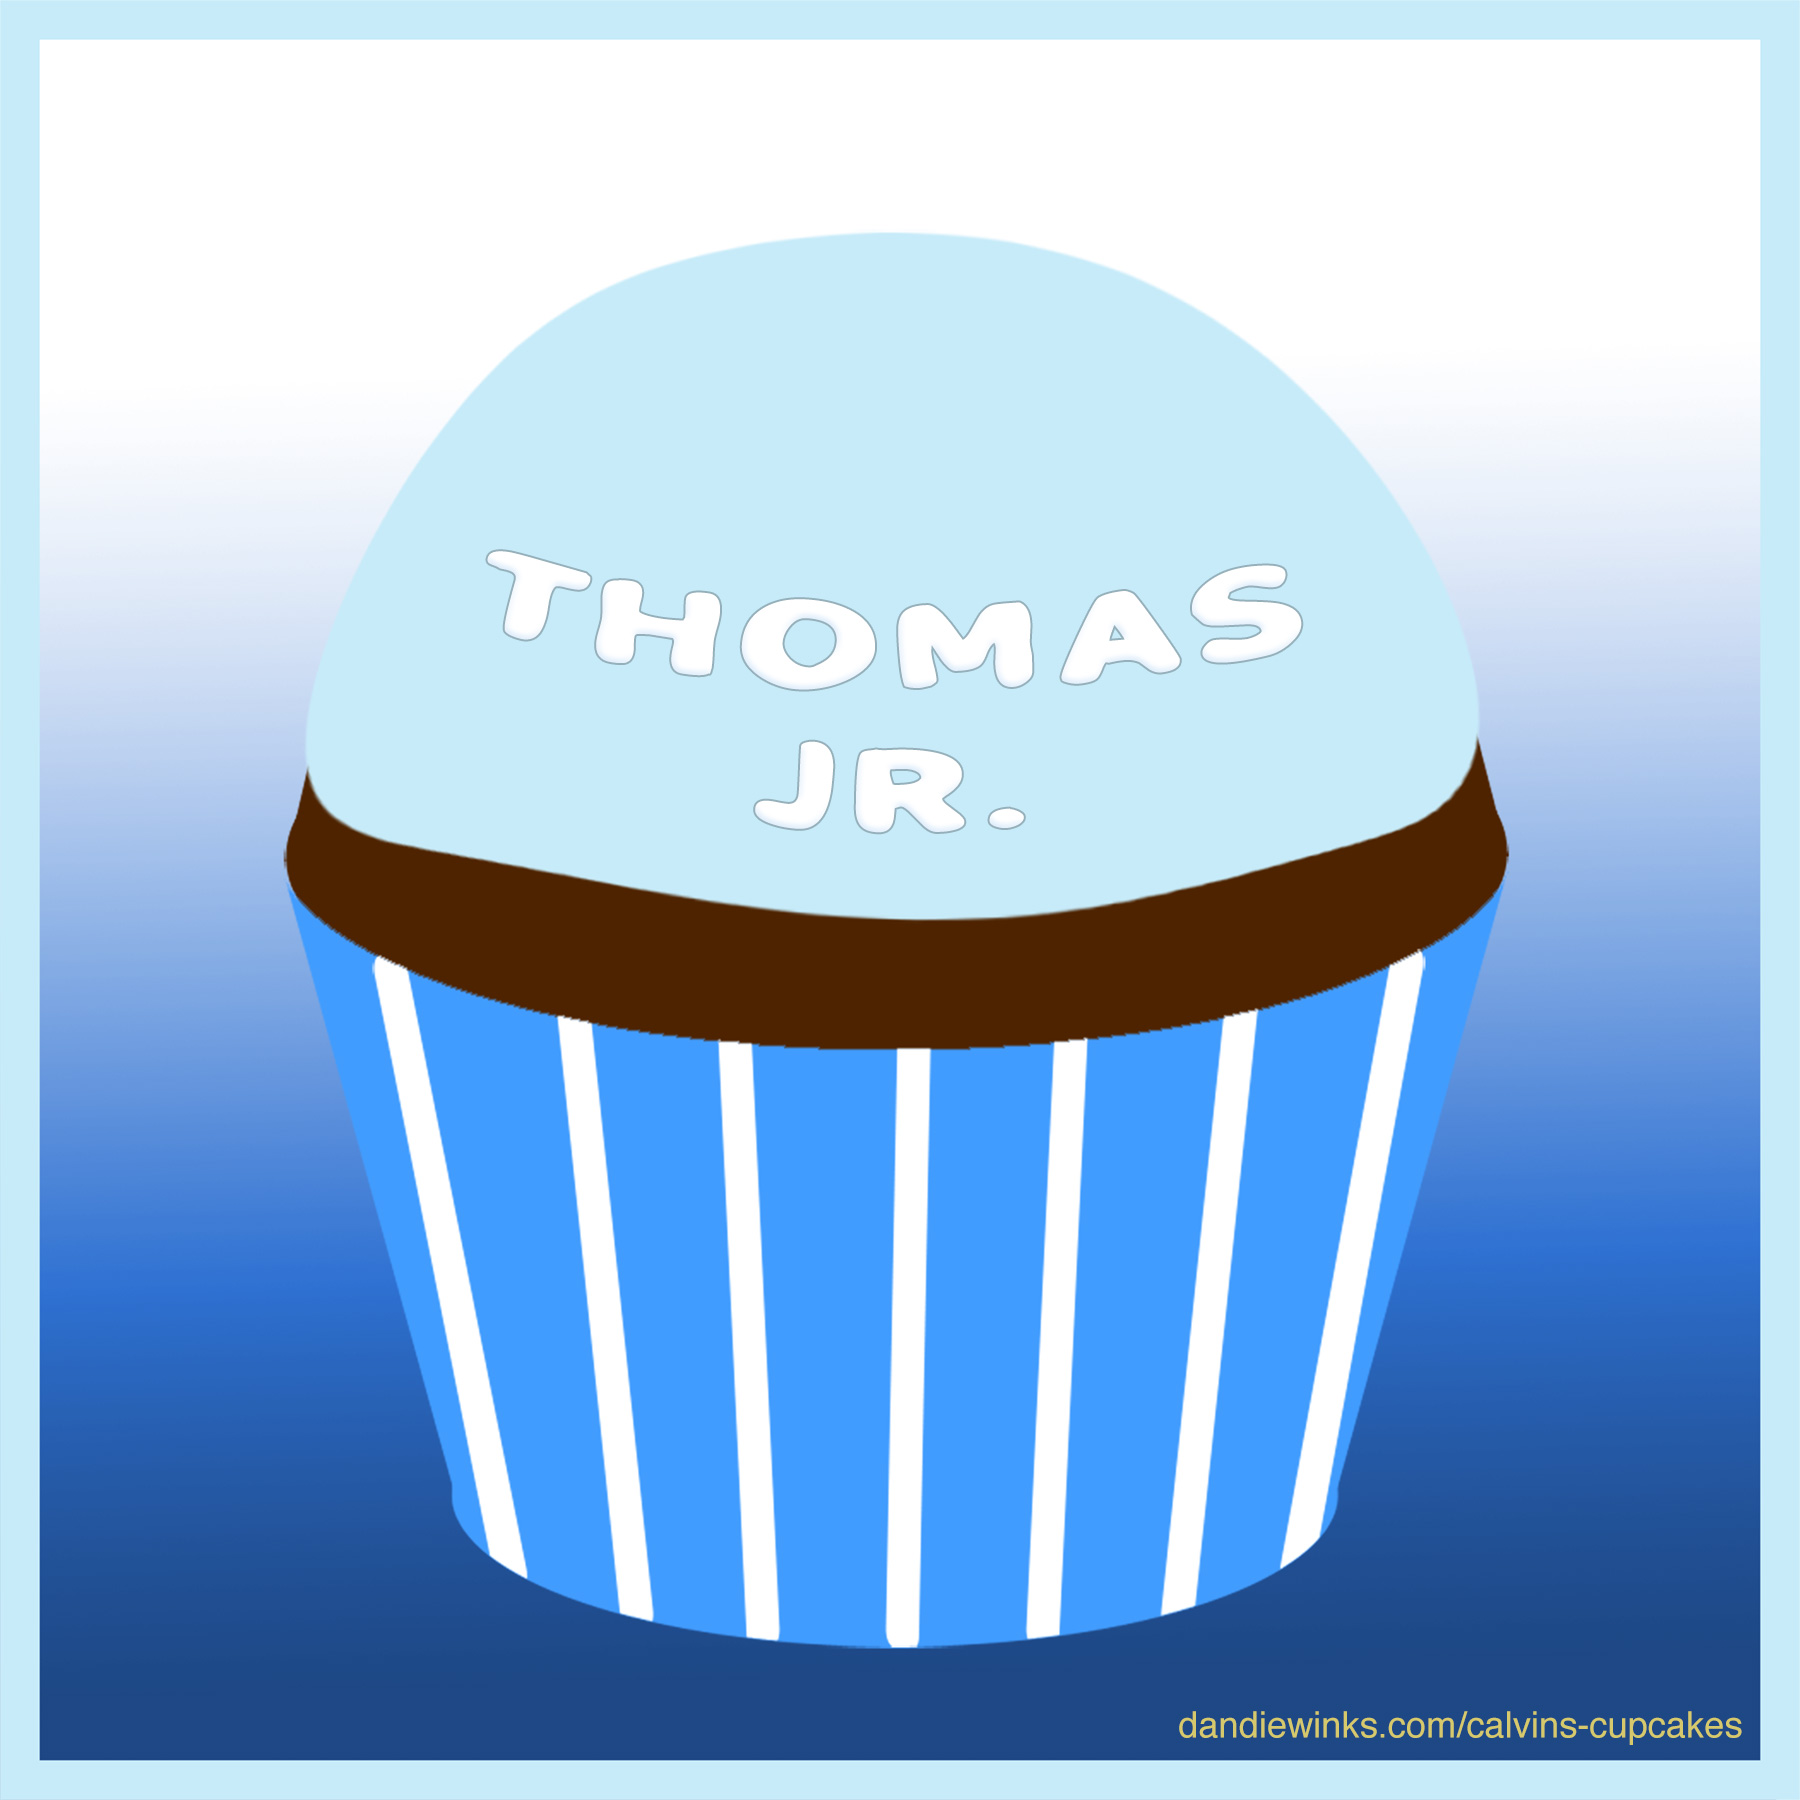 Thomas Jr.'s remembrance cupcake